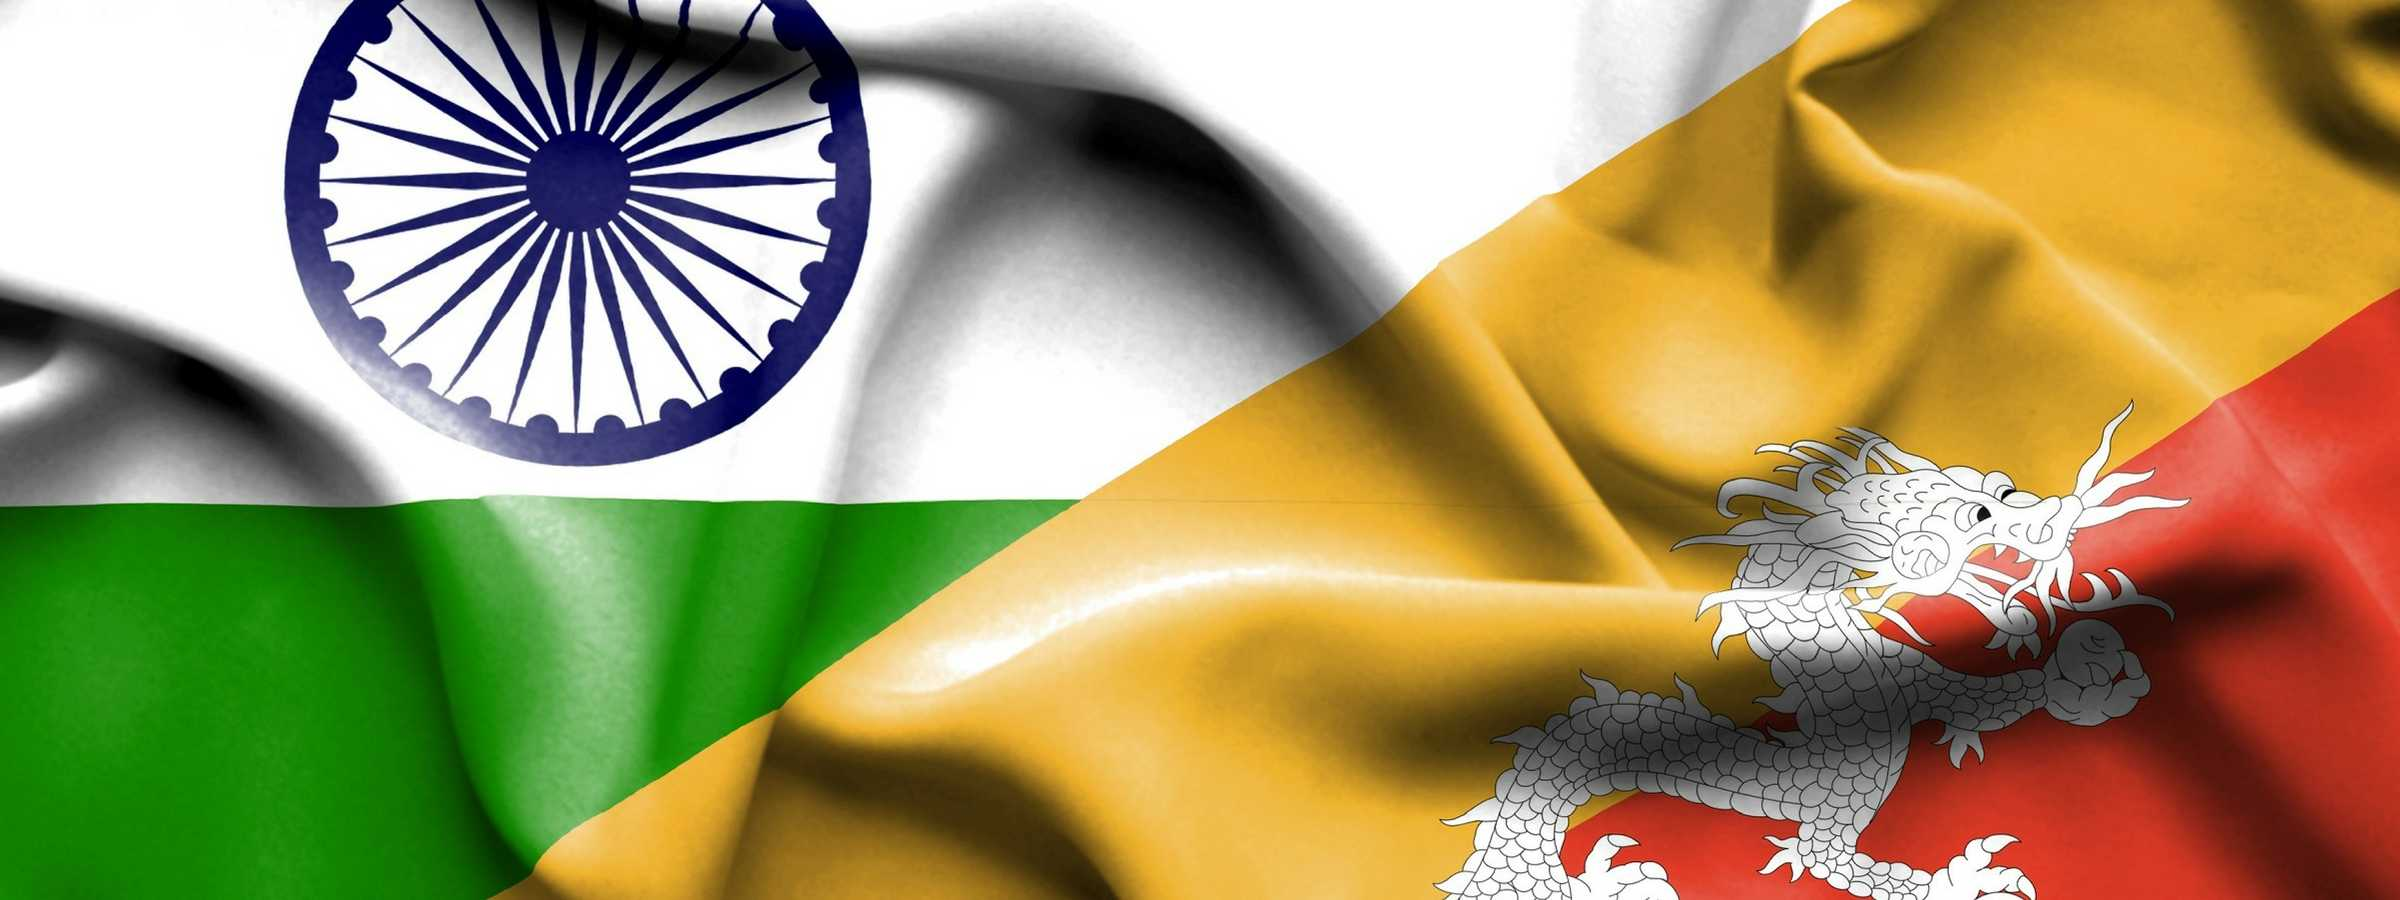 Deepening connections between Bhutan and India through cross-border